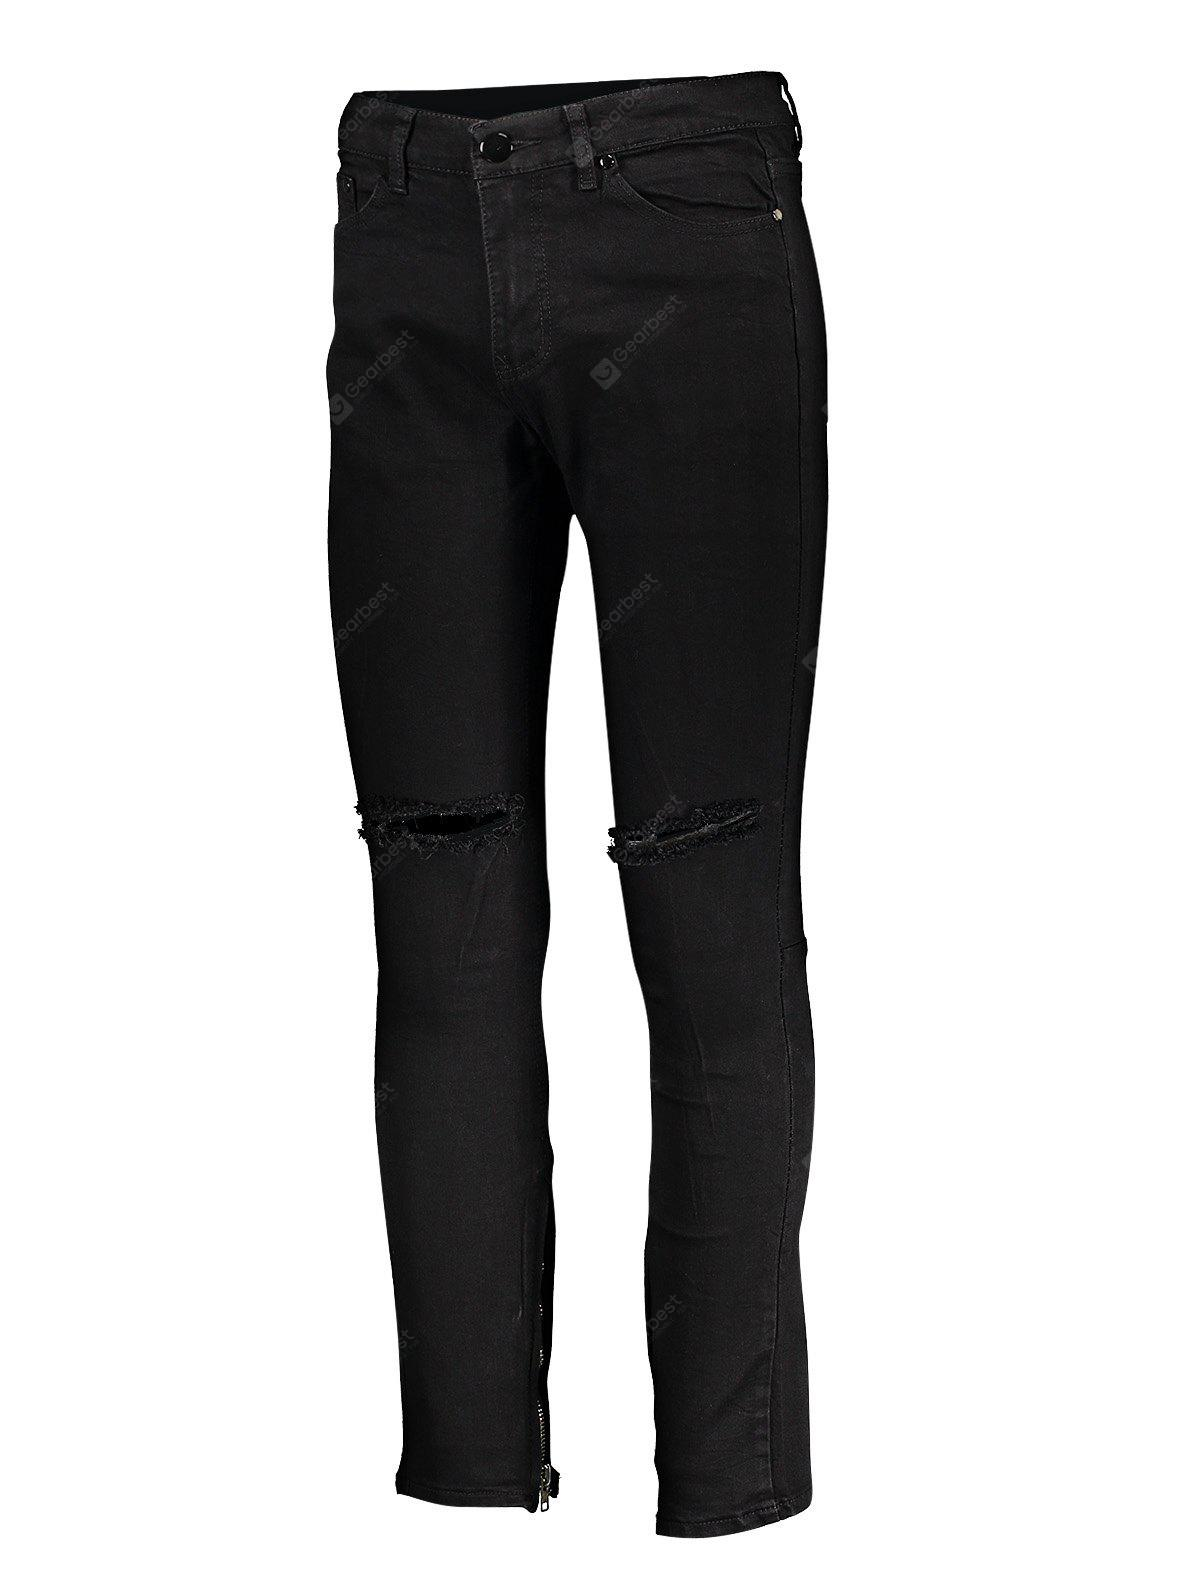 Men Skinny Jeans with Knee Rips